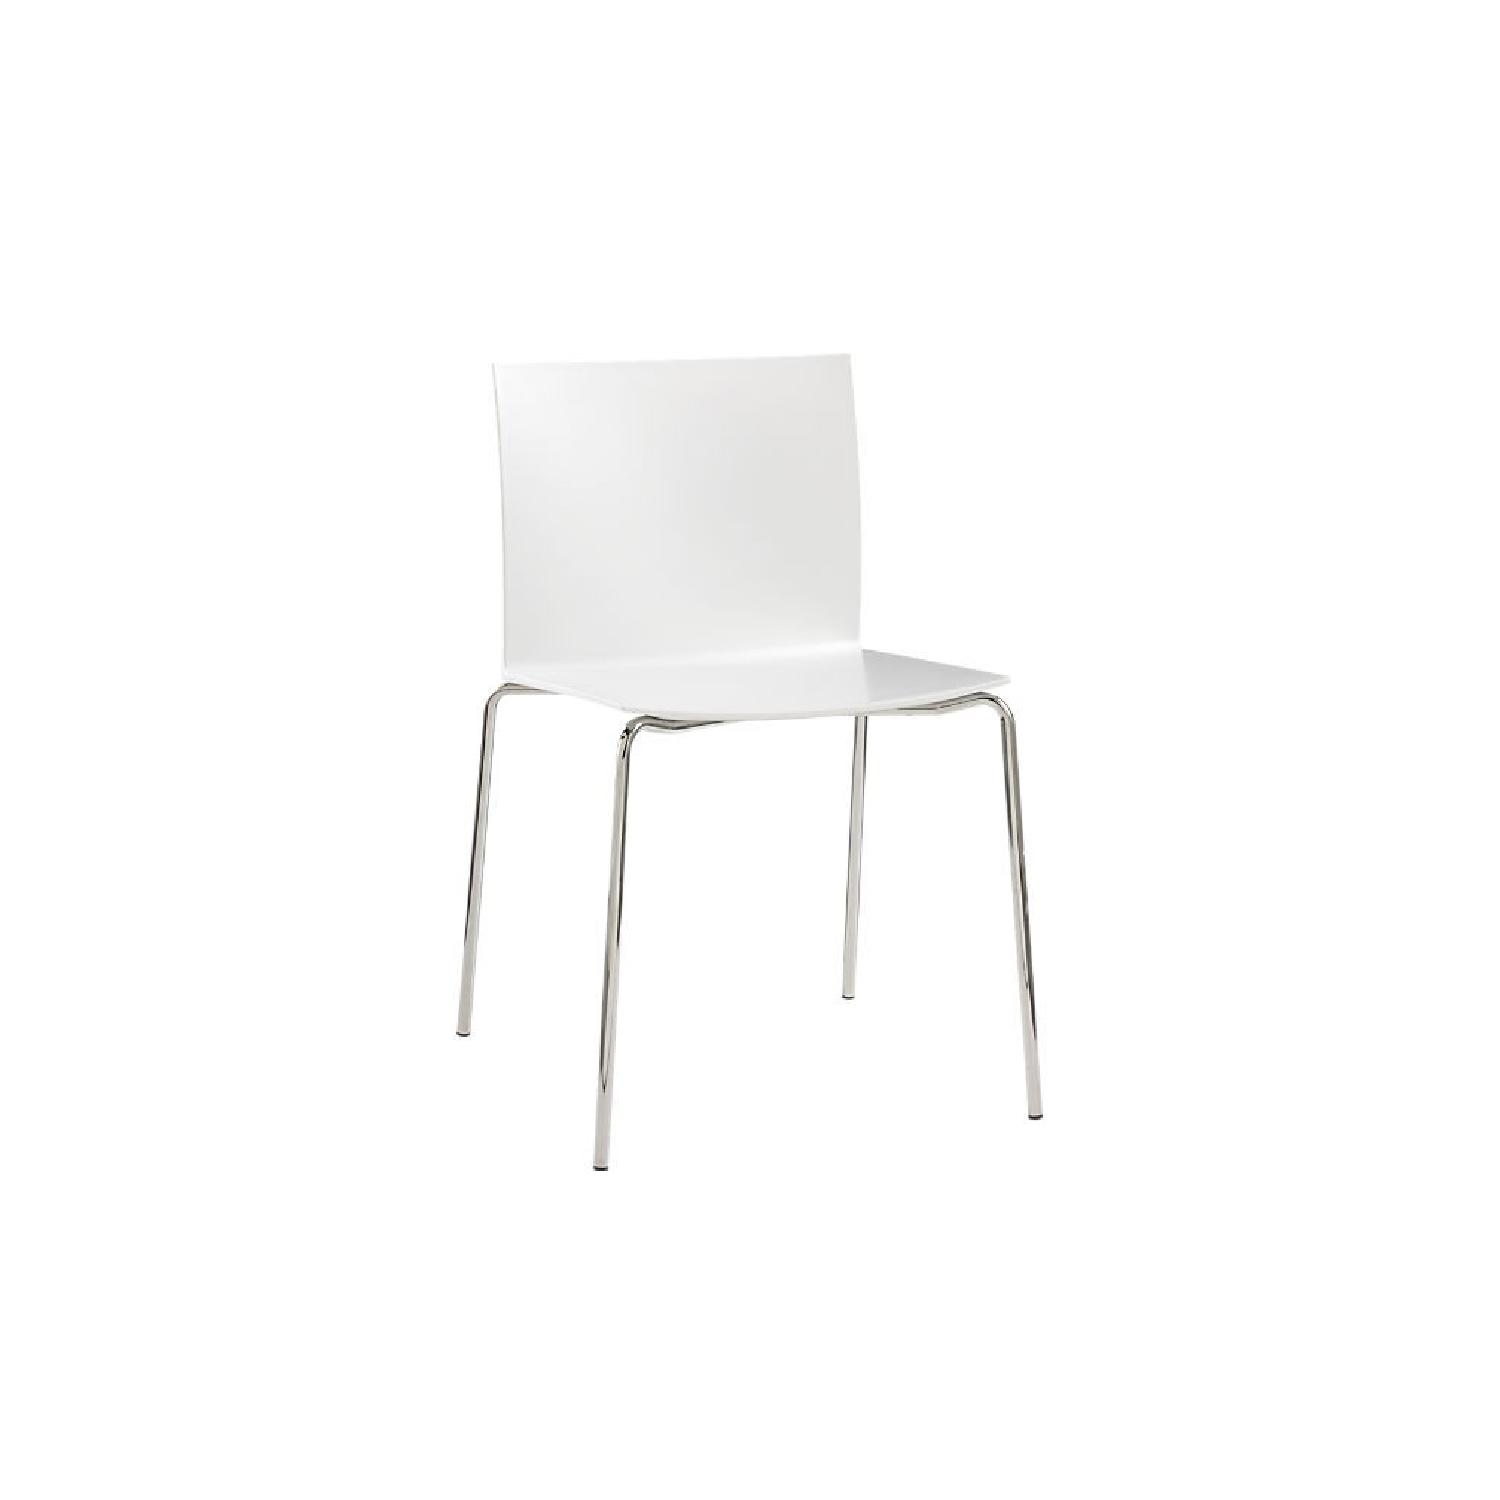 CB2 Slim White Chairs